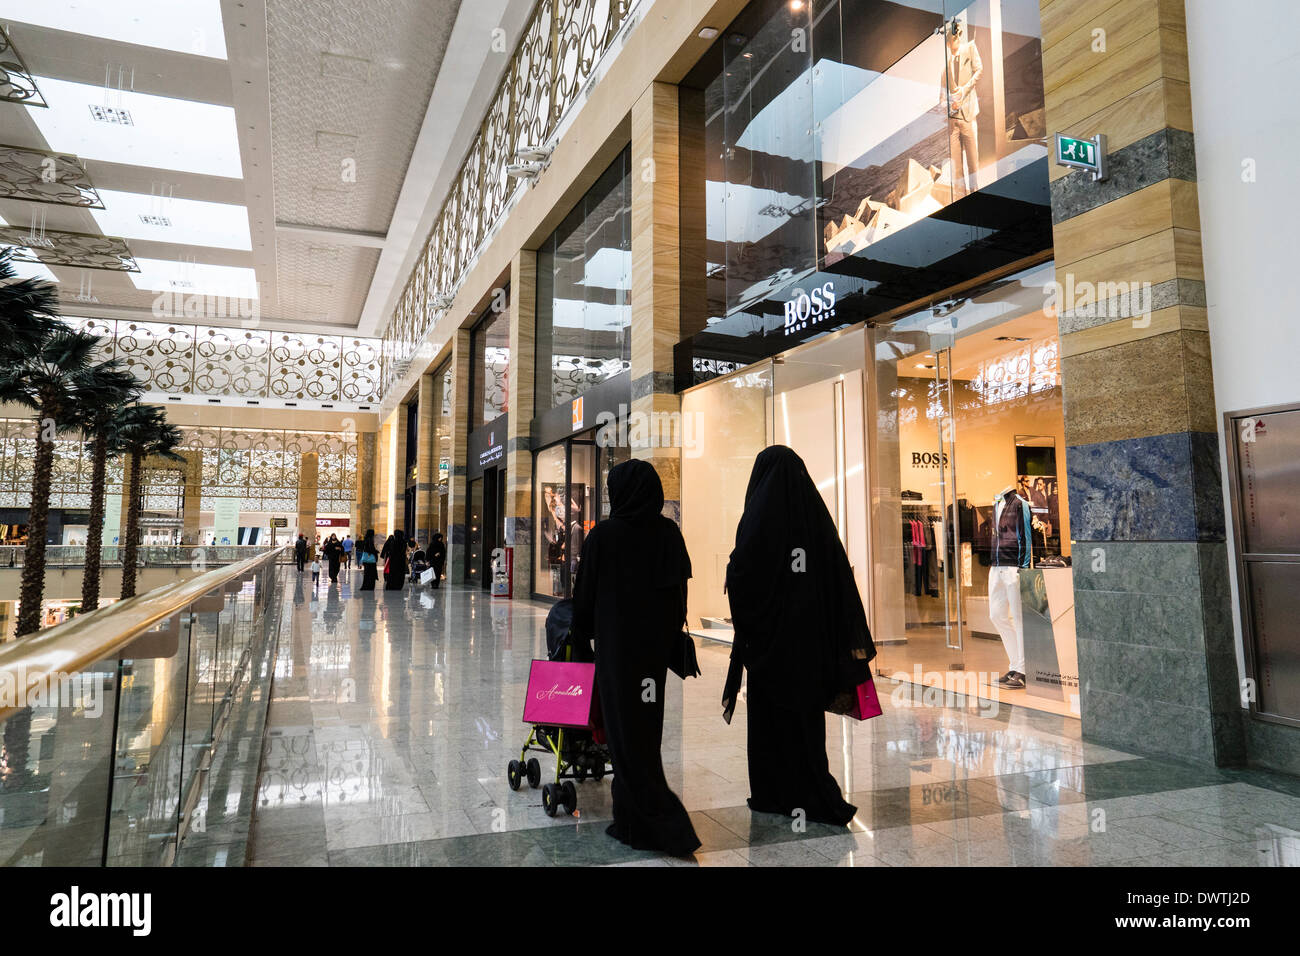 Mirdif City Centre shopping mall in Dubai United Arab Emirates Stock Photo